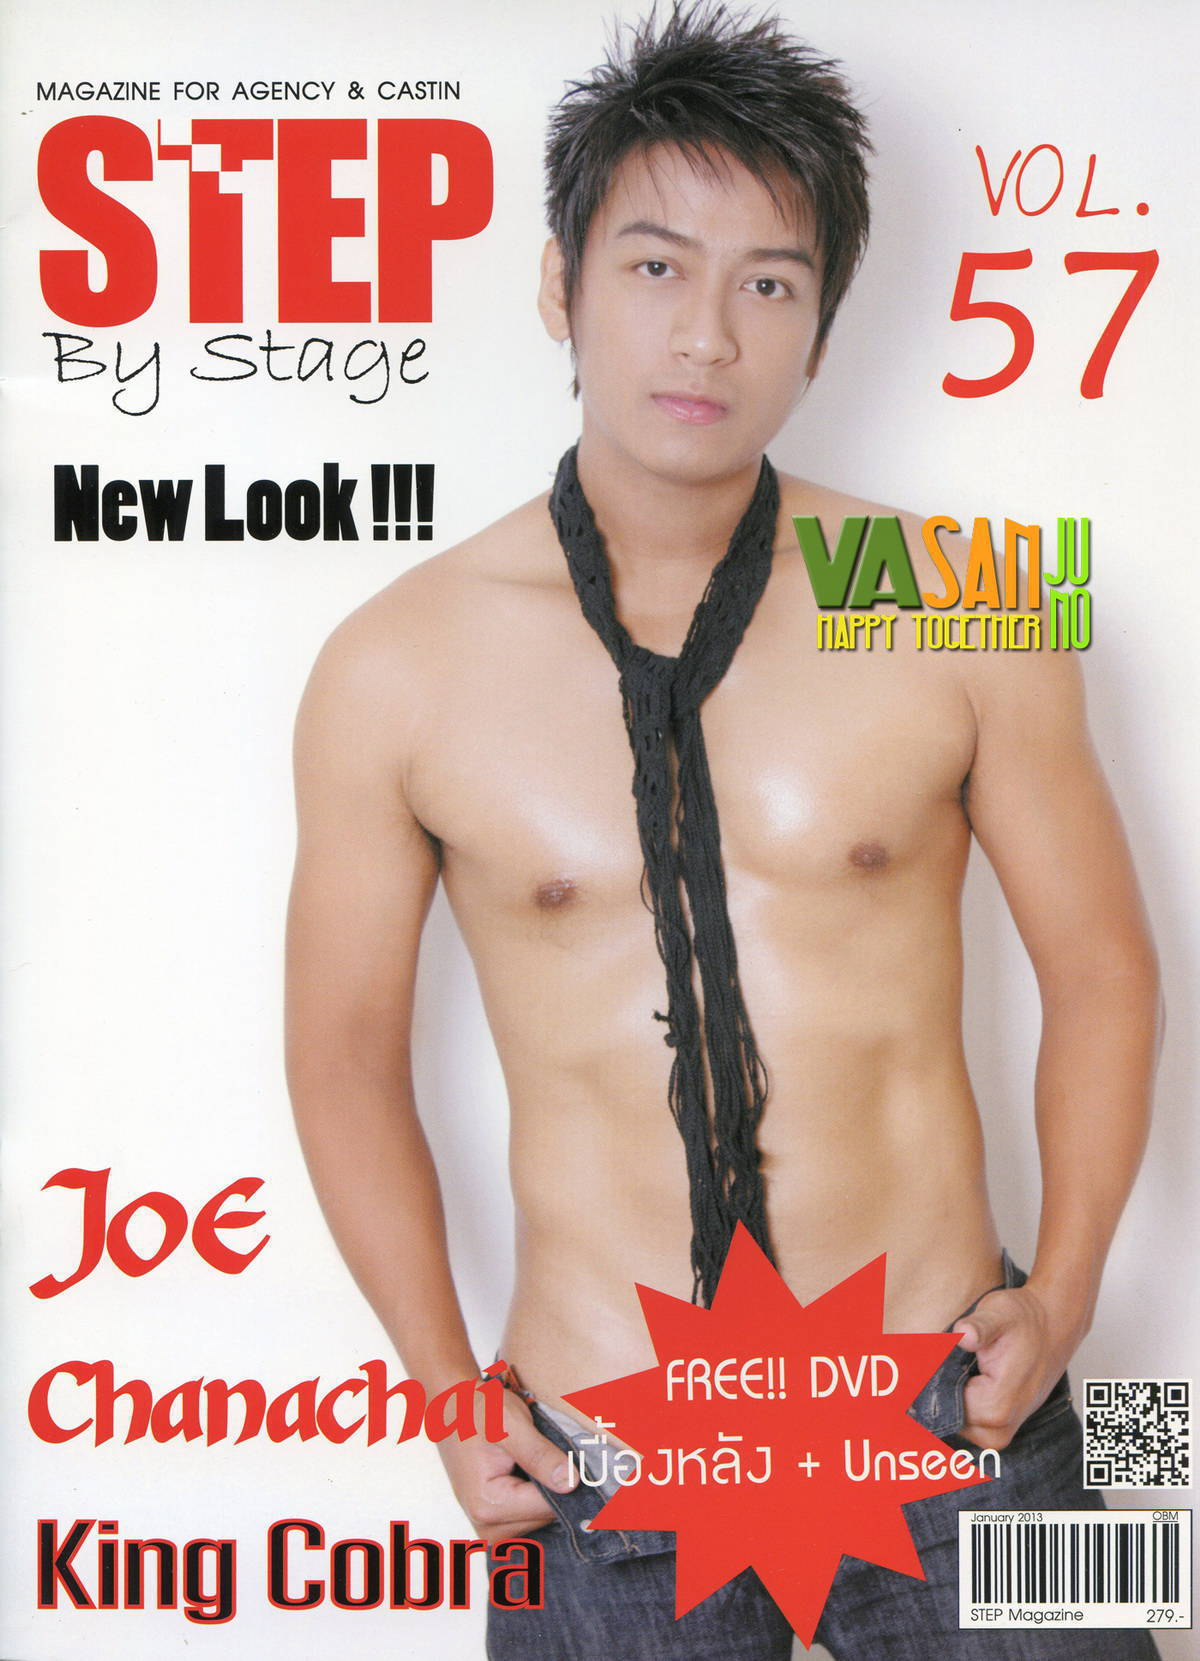 Step Vol. 57 Joe - Chanachai King Cobra